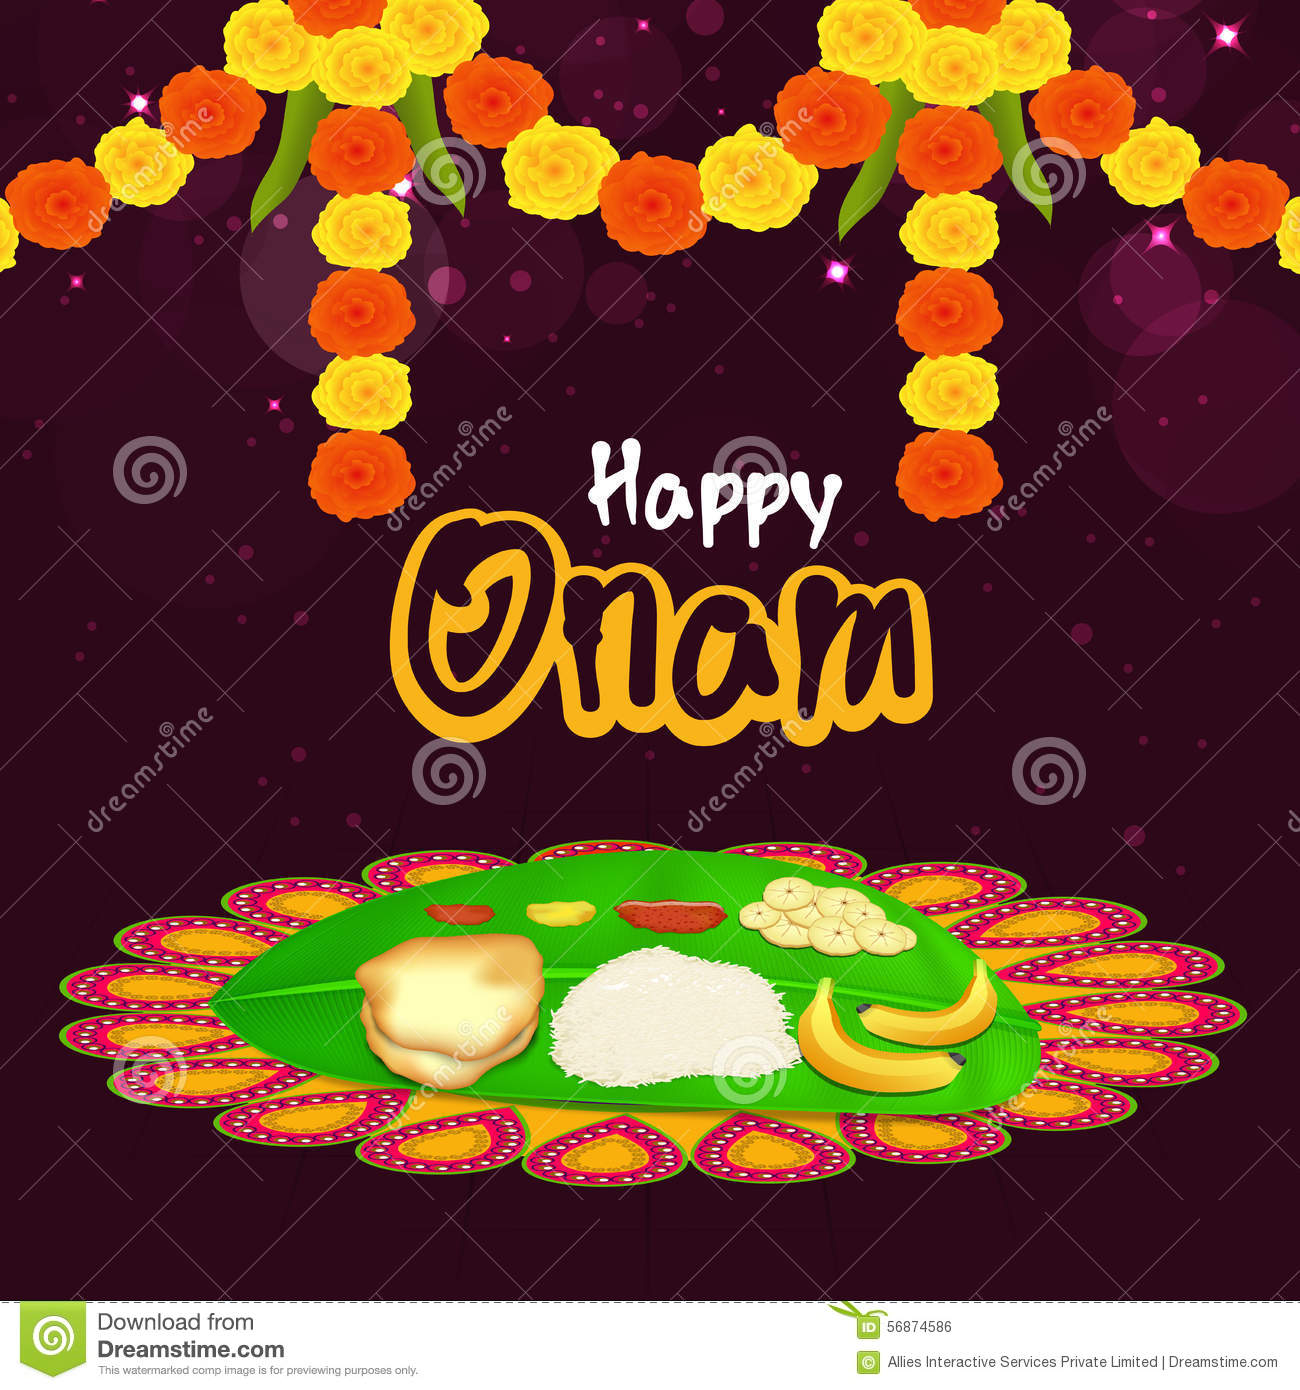 Greeting card for happy onam celebration stock illustration download greeting card for happy onam celebration stock illustration illustration of card design m4hsunfo